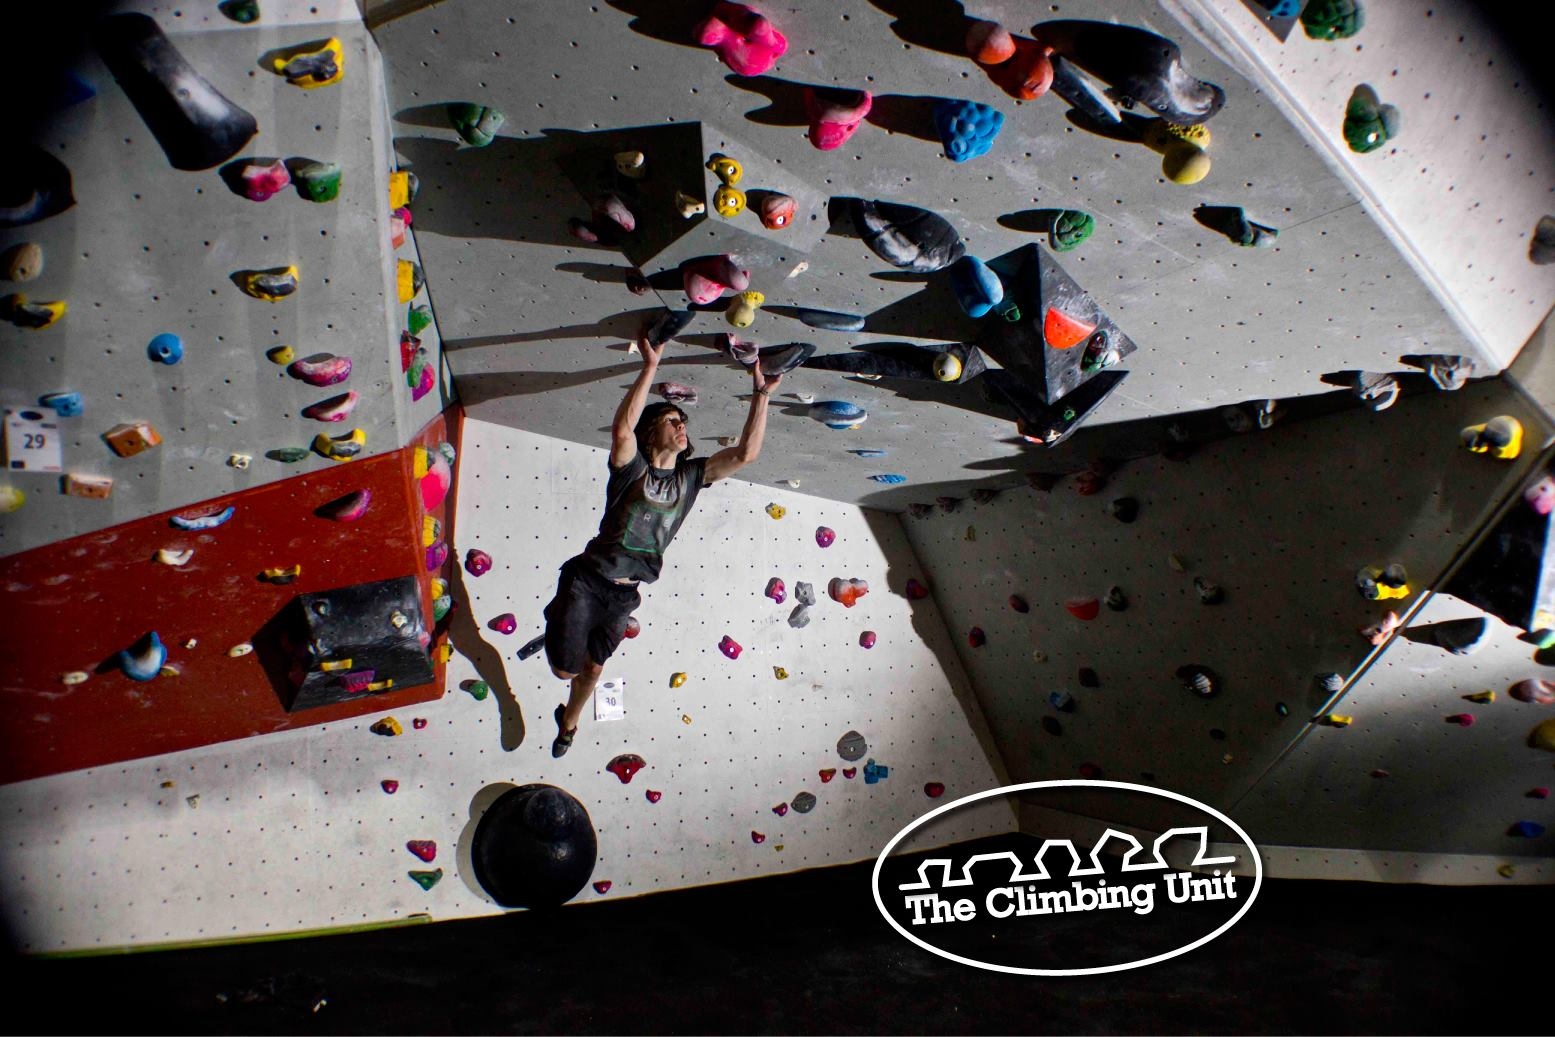 The Climbing Unit SBL